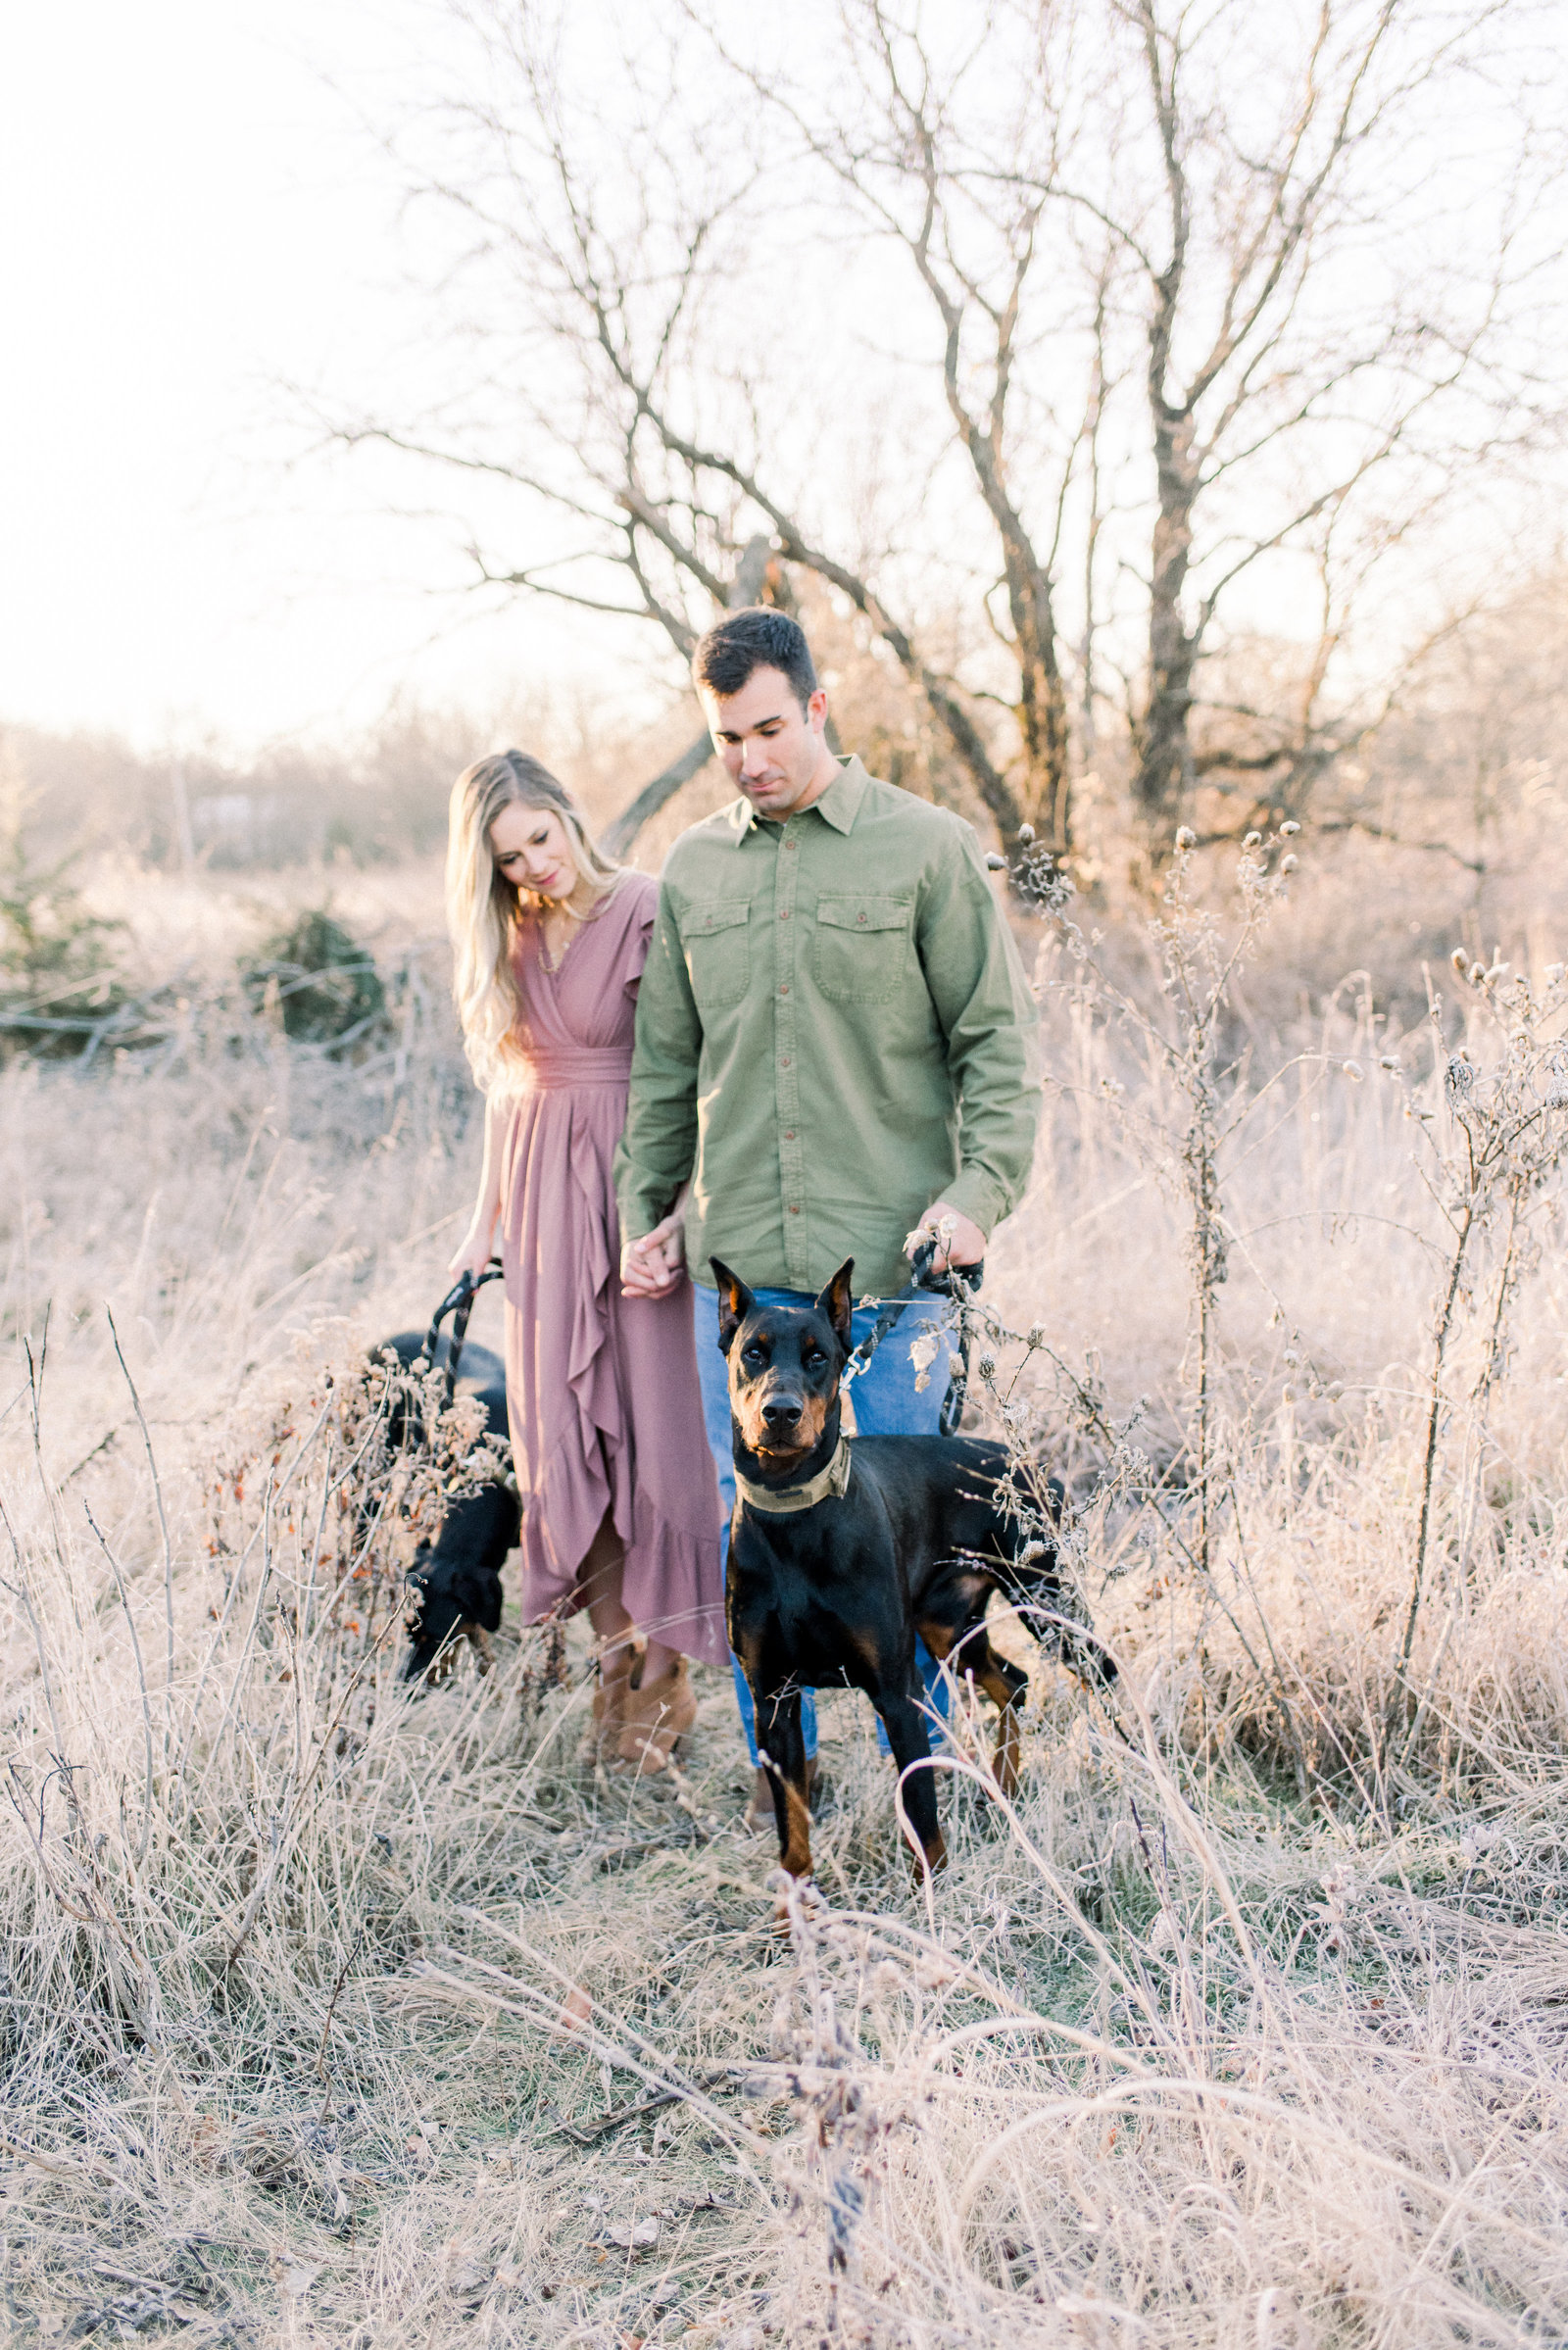 Winter_Sunrise_Photo_Shoot_Kansas_City_Ashley+Jonny2019-33